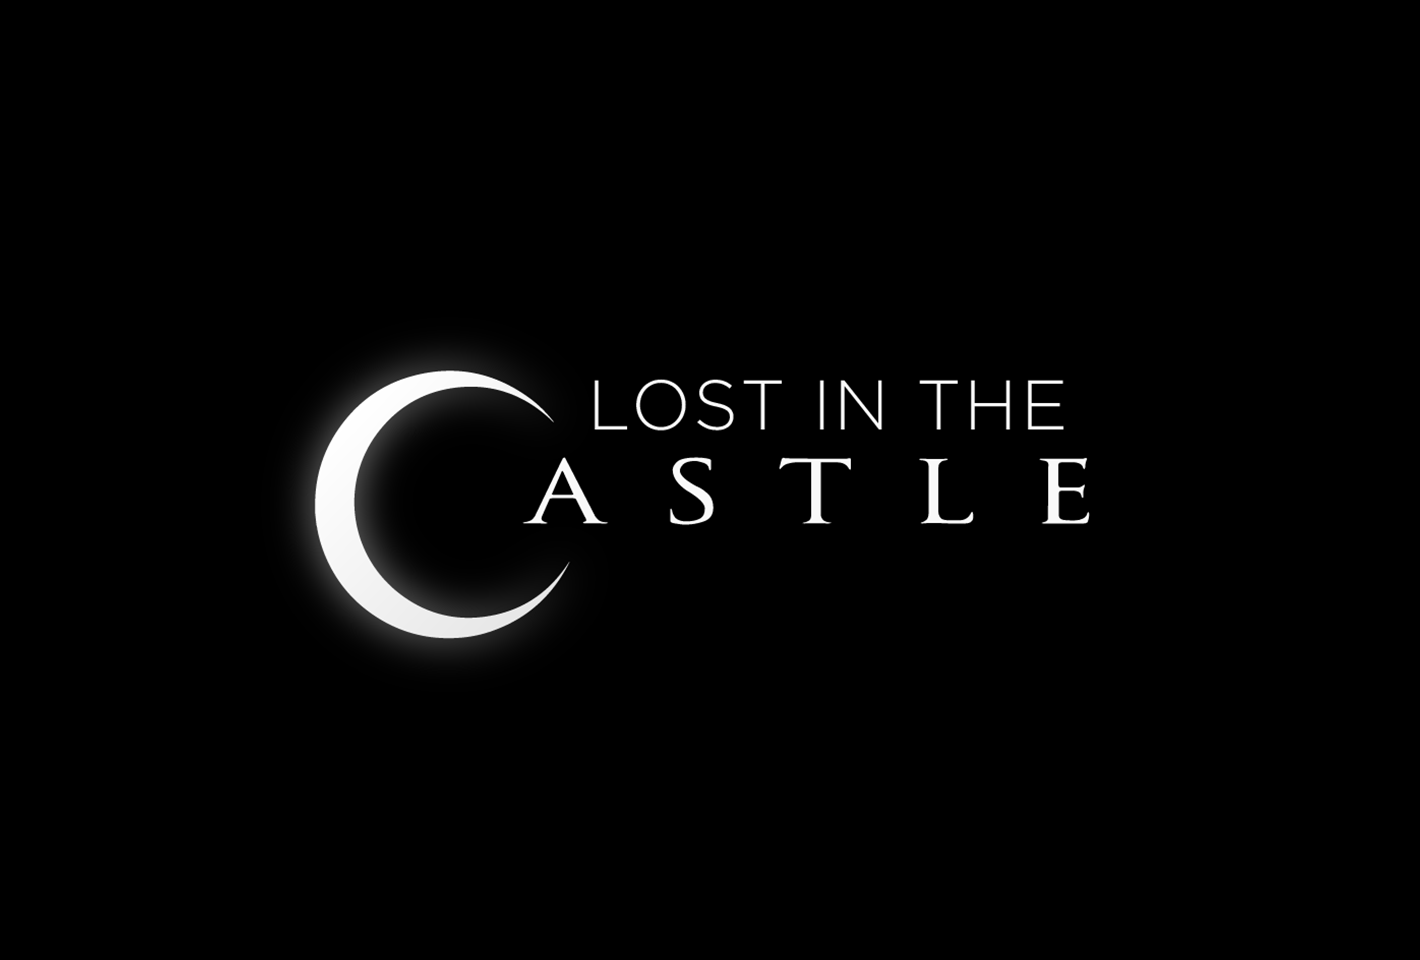 Castlemania Games Welcome To The Castle >> Lost In The Castle Conversations Music Video Games Movies And